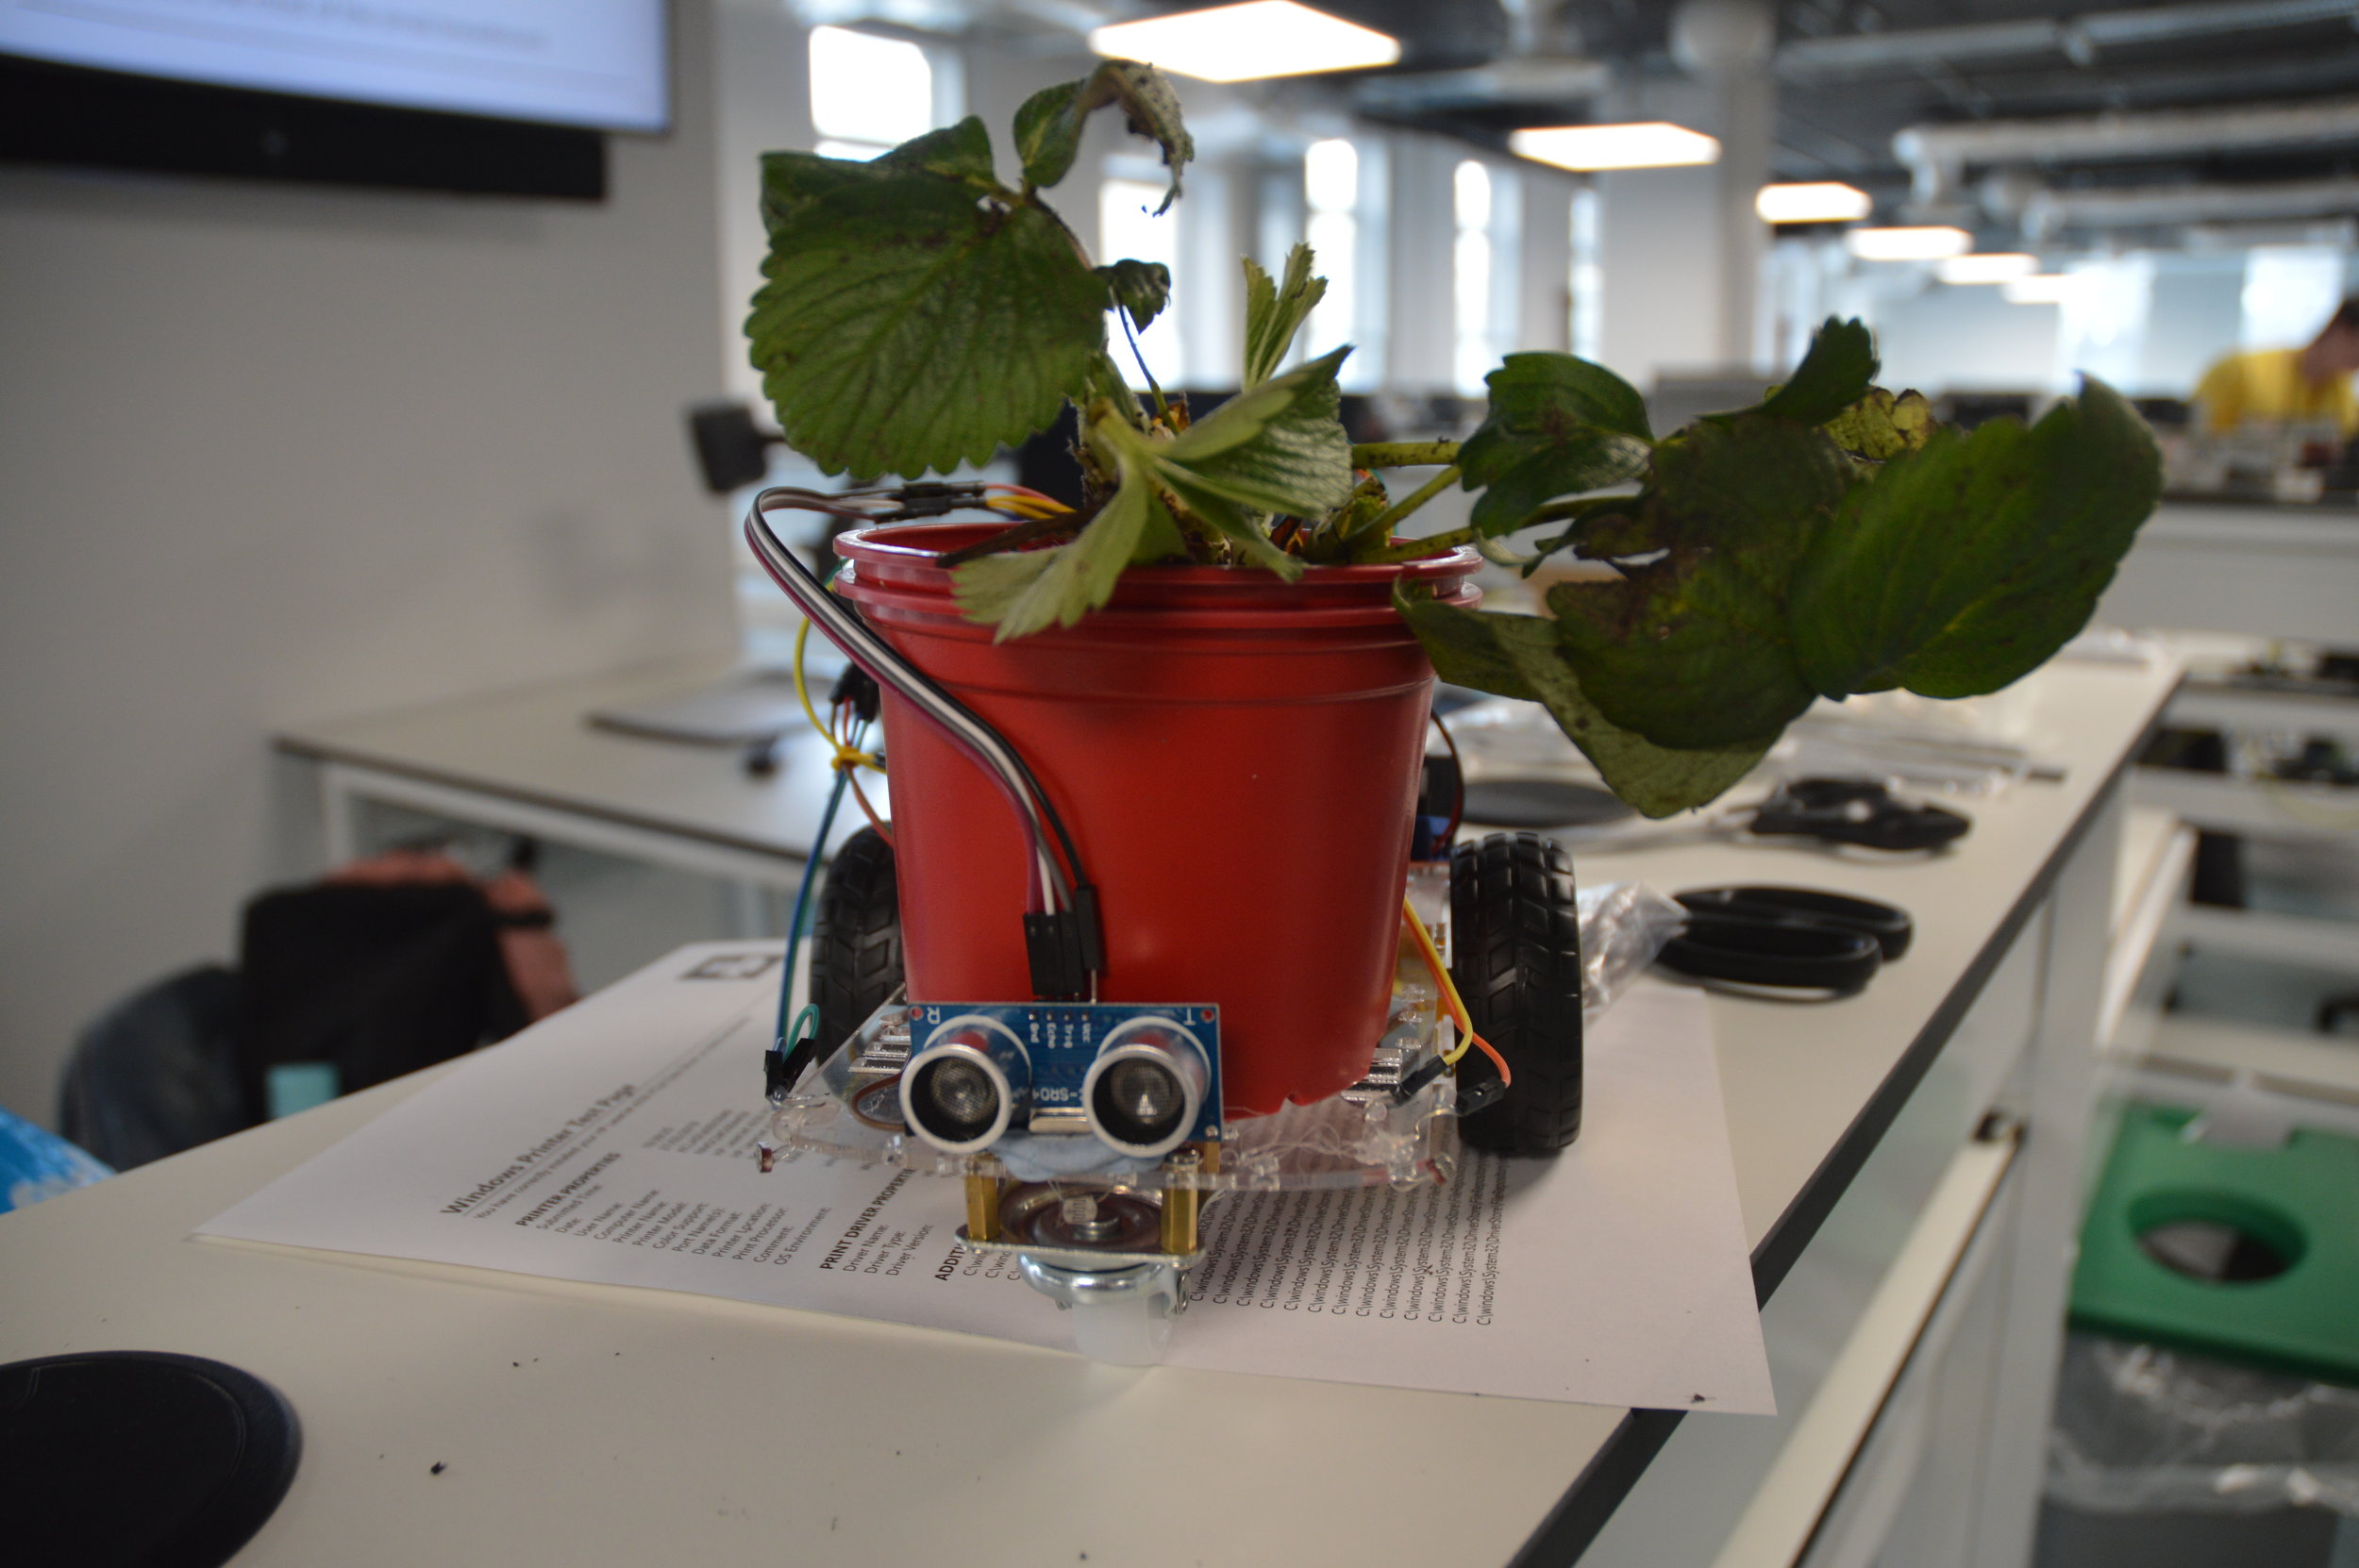 The end-goal mobile growbot w/strawberry plant